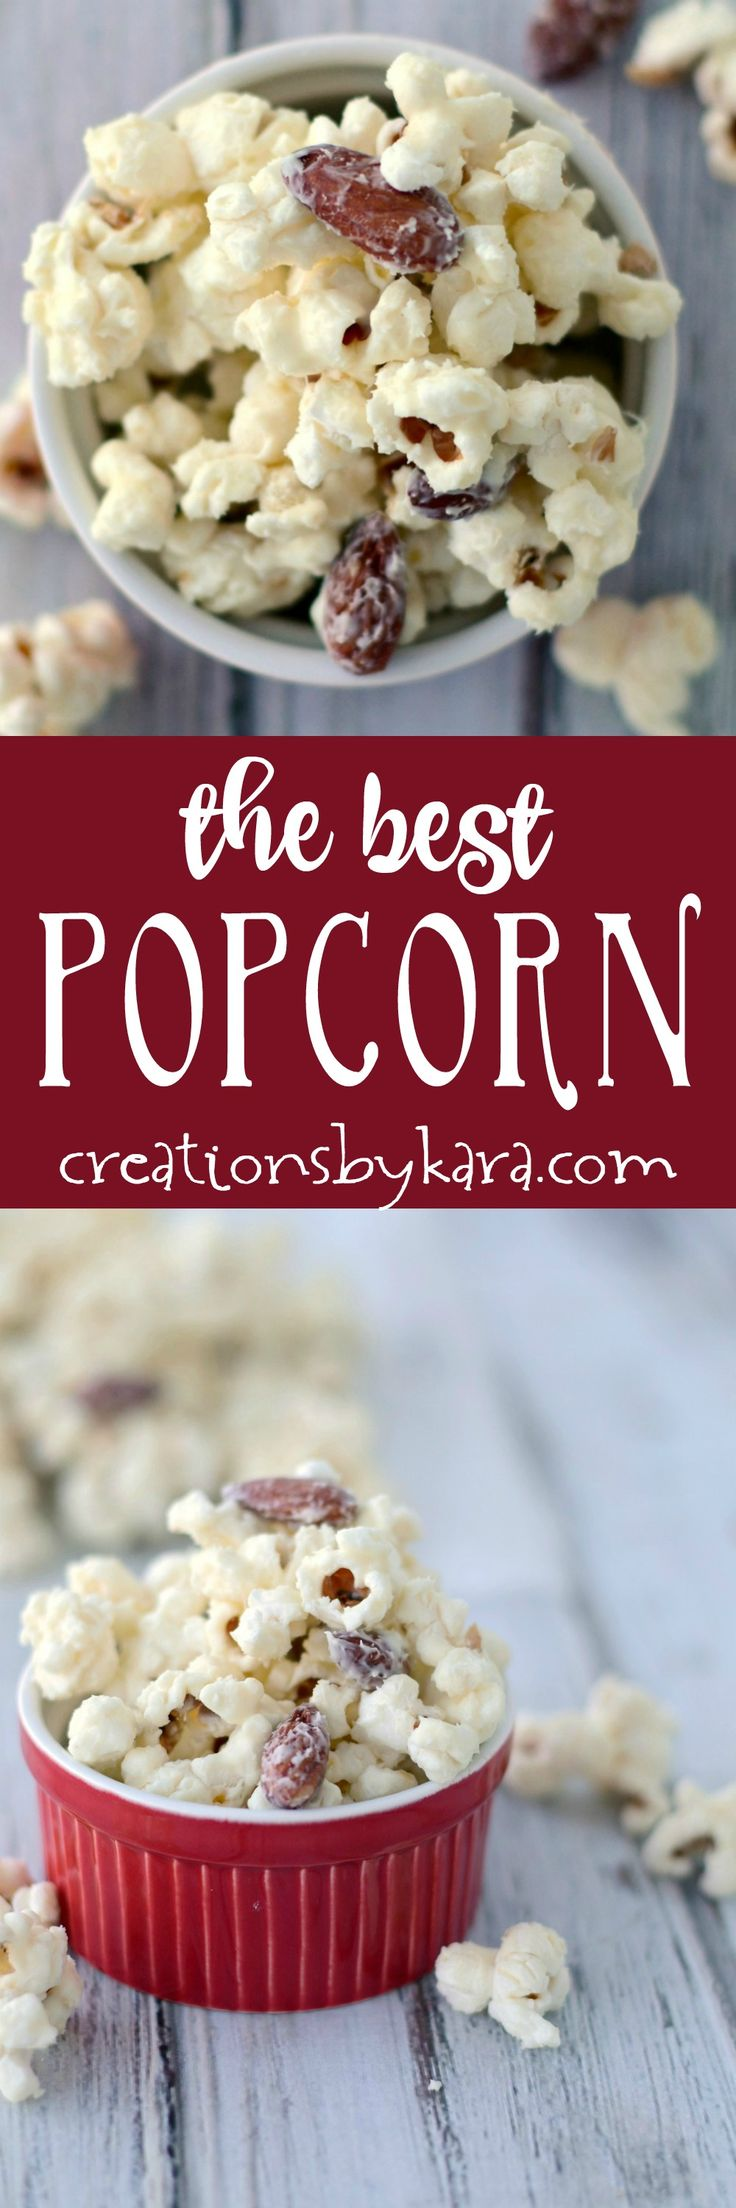 White Chocolate Popcorn takes about five minutes to make, and it is absolutely addicting! The best popcorn ever! An easy snack that no one can resist.